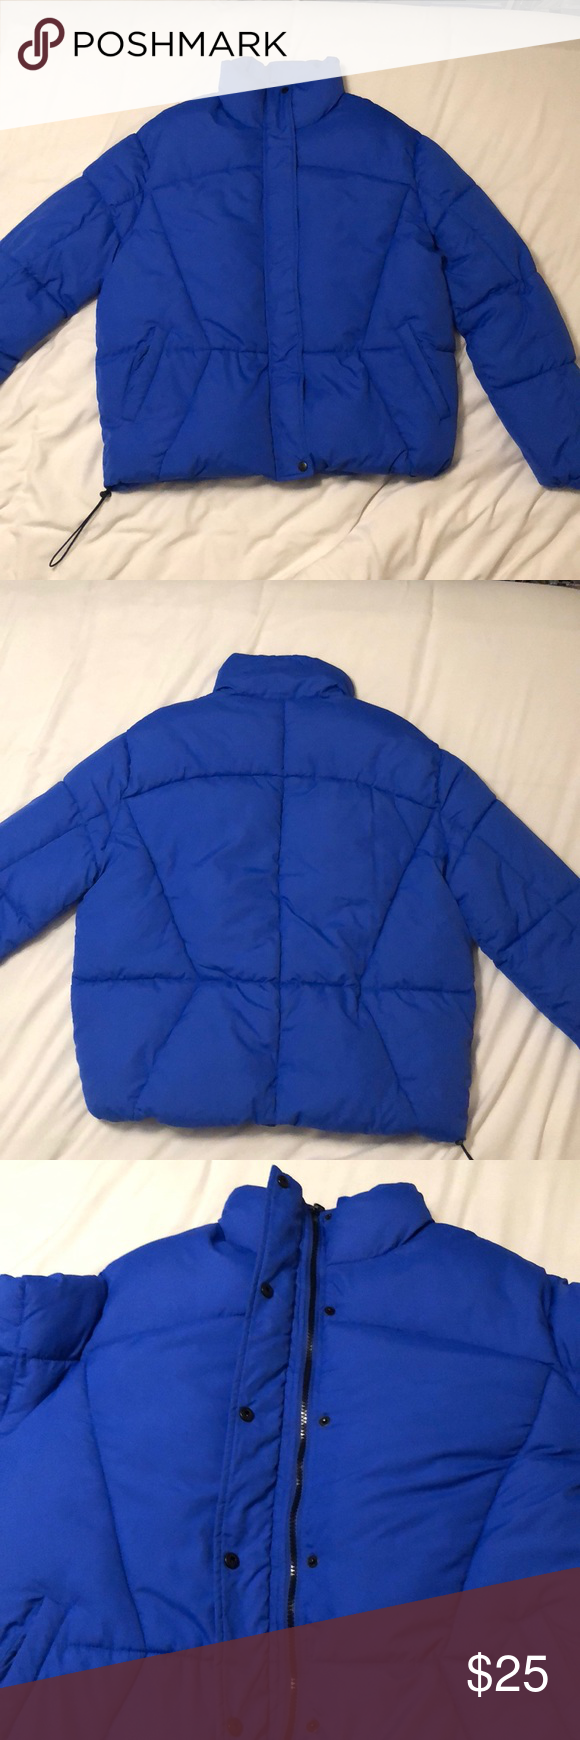 Unisex Medium Puffer A Royal Blue Puffer Jacket With High Collar And Pockets With Black Buttons Prettylittlet Blue Puffer Jacket Clothes Design Fashion Design [ 1740 x 580 Pixel ]